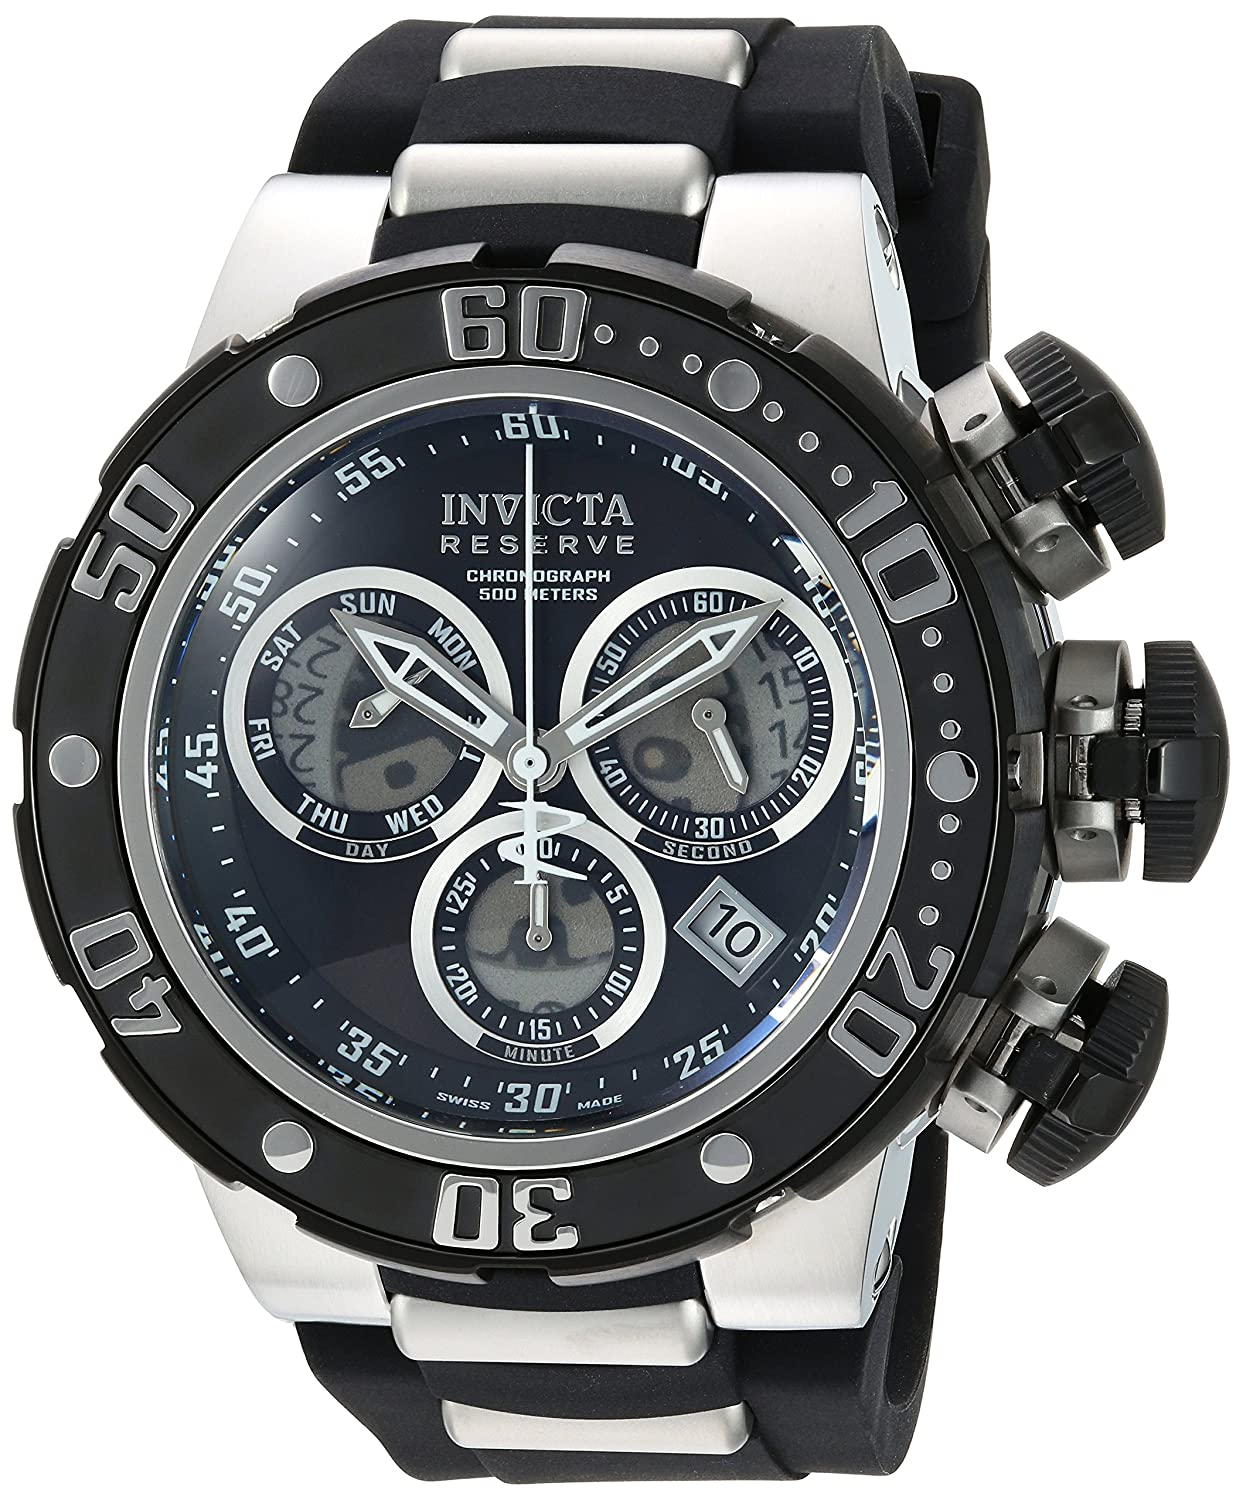 Invicta Men s Reserve Stainless Steel Swiss-Quartz Watch with Silicone Strap, Black, 30 Model 21639